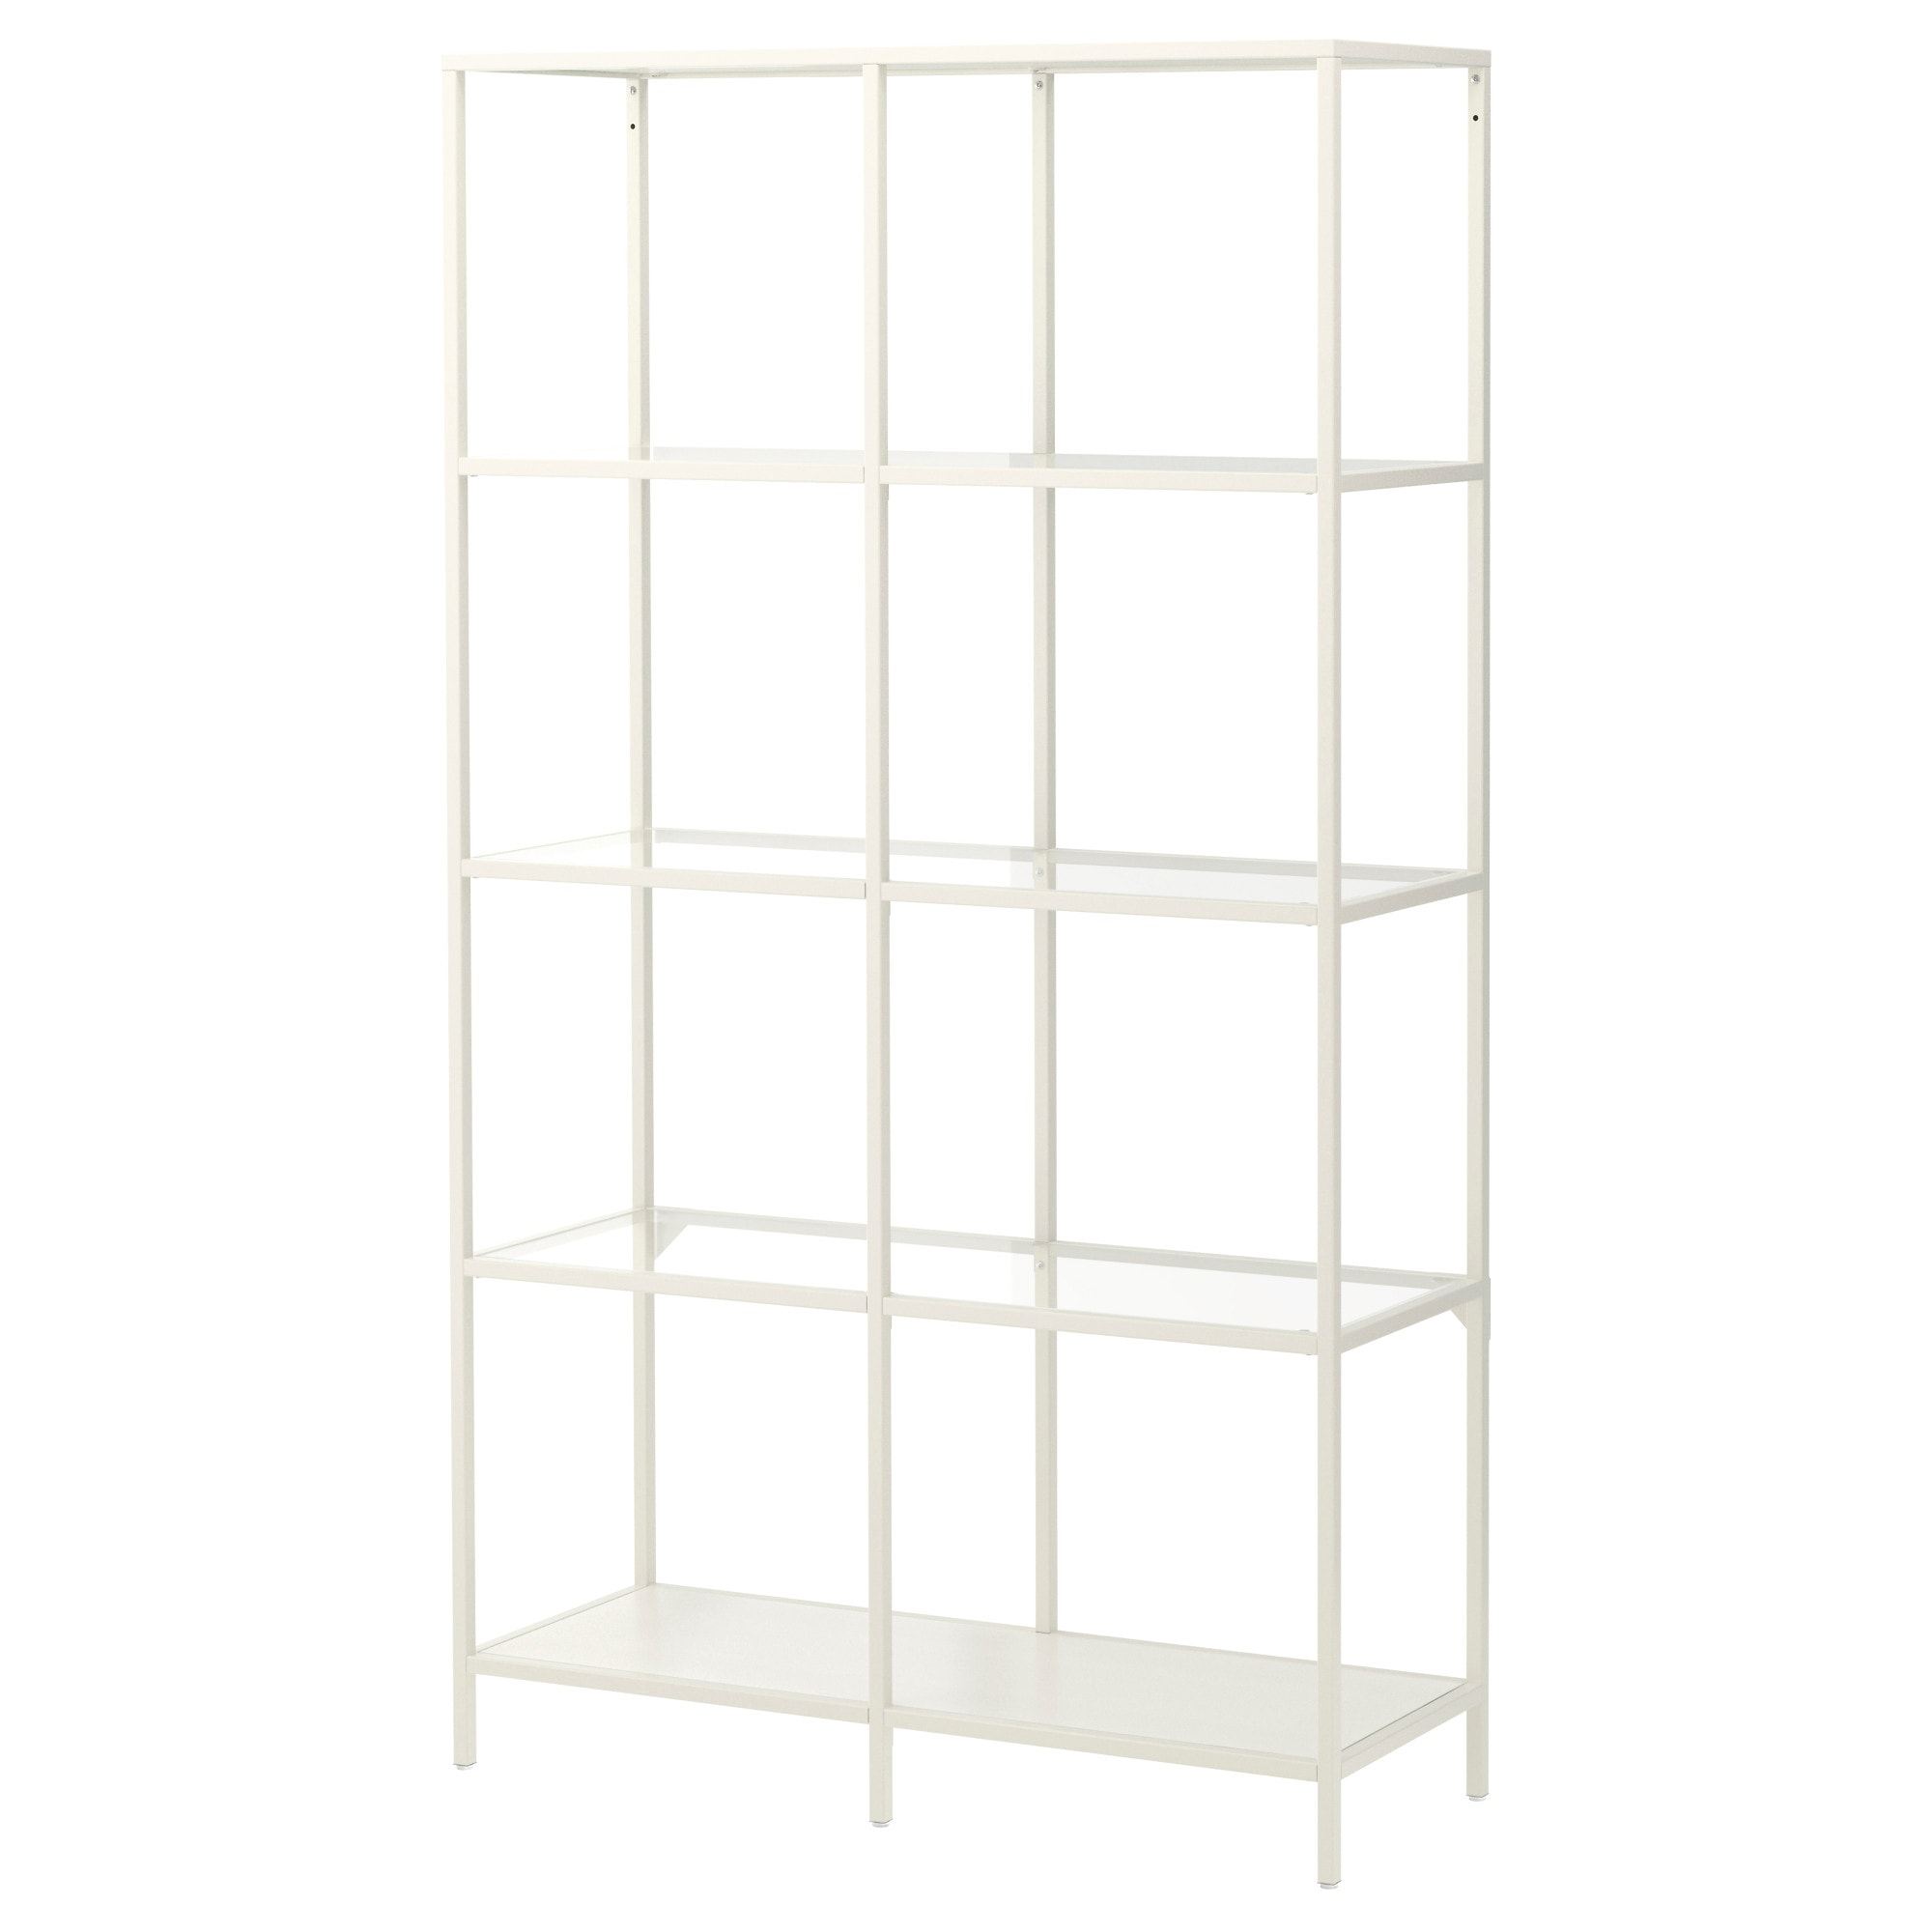 glass bookcases home lodge kuo product etheridge shelf bookcase wood detail kathy reclaimed rustic